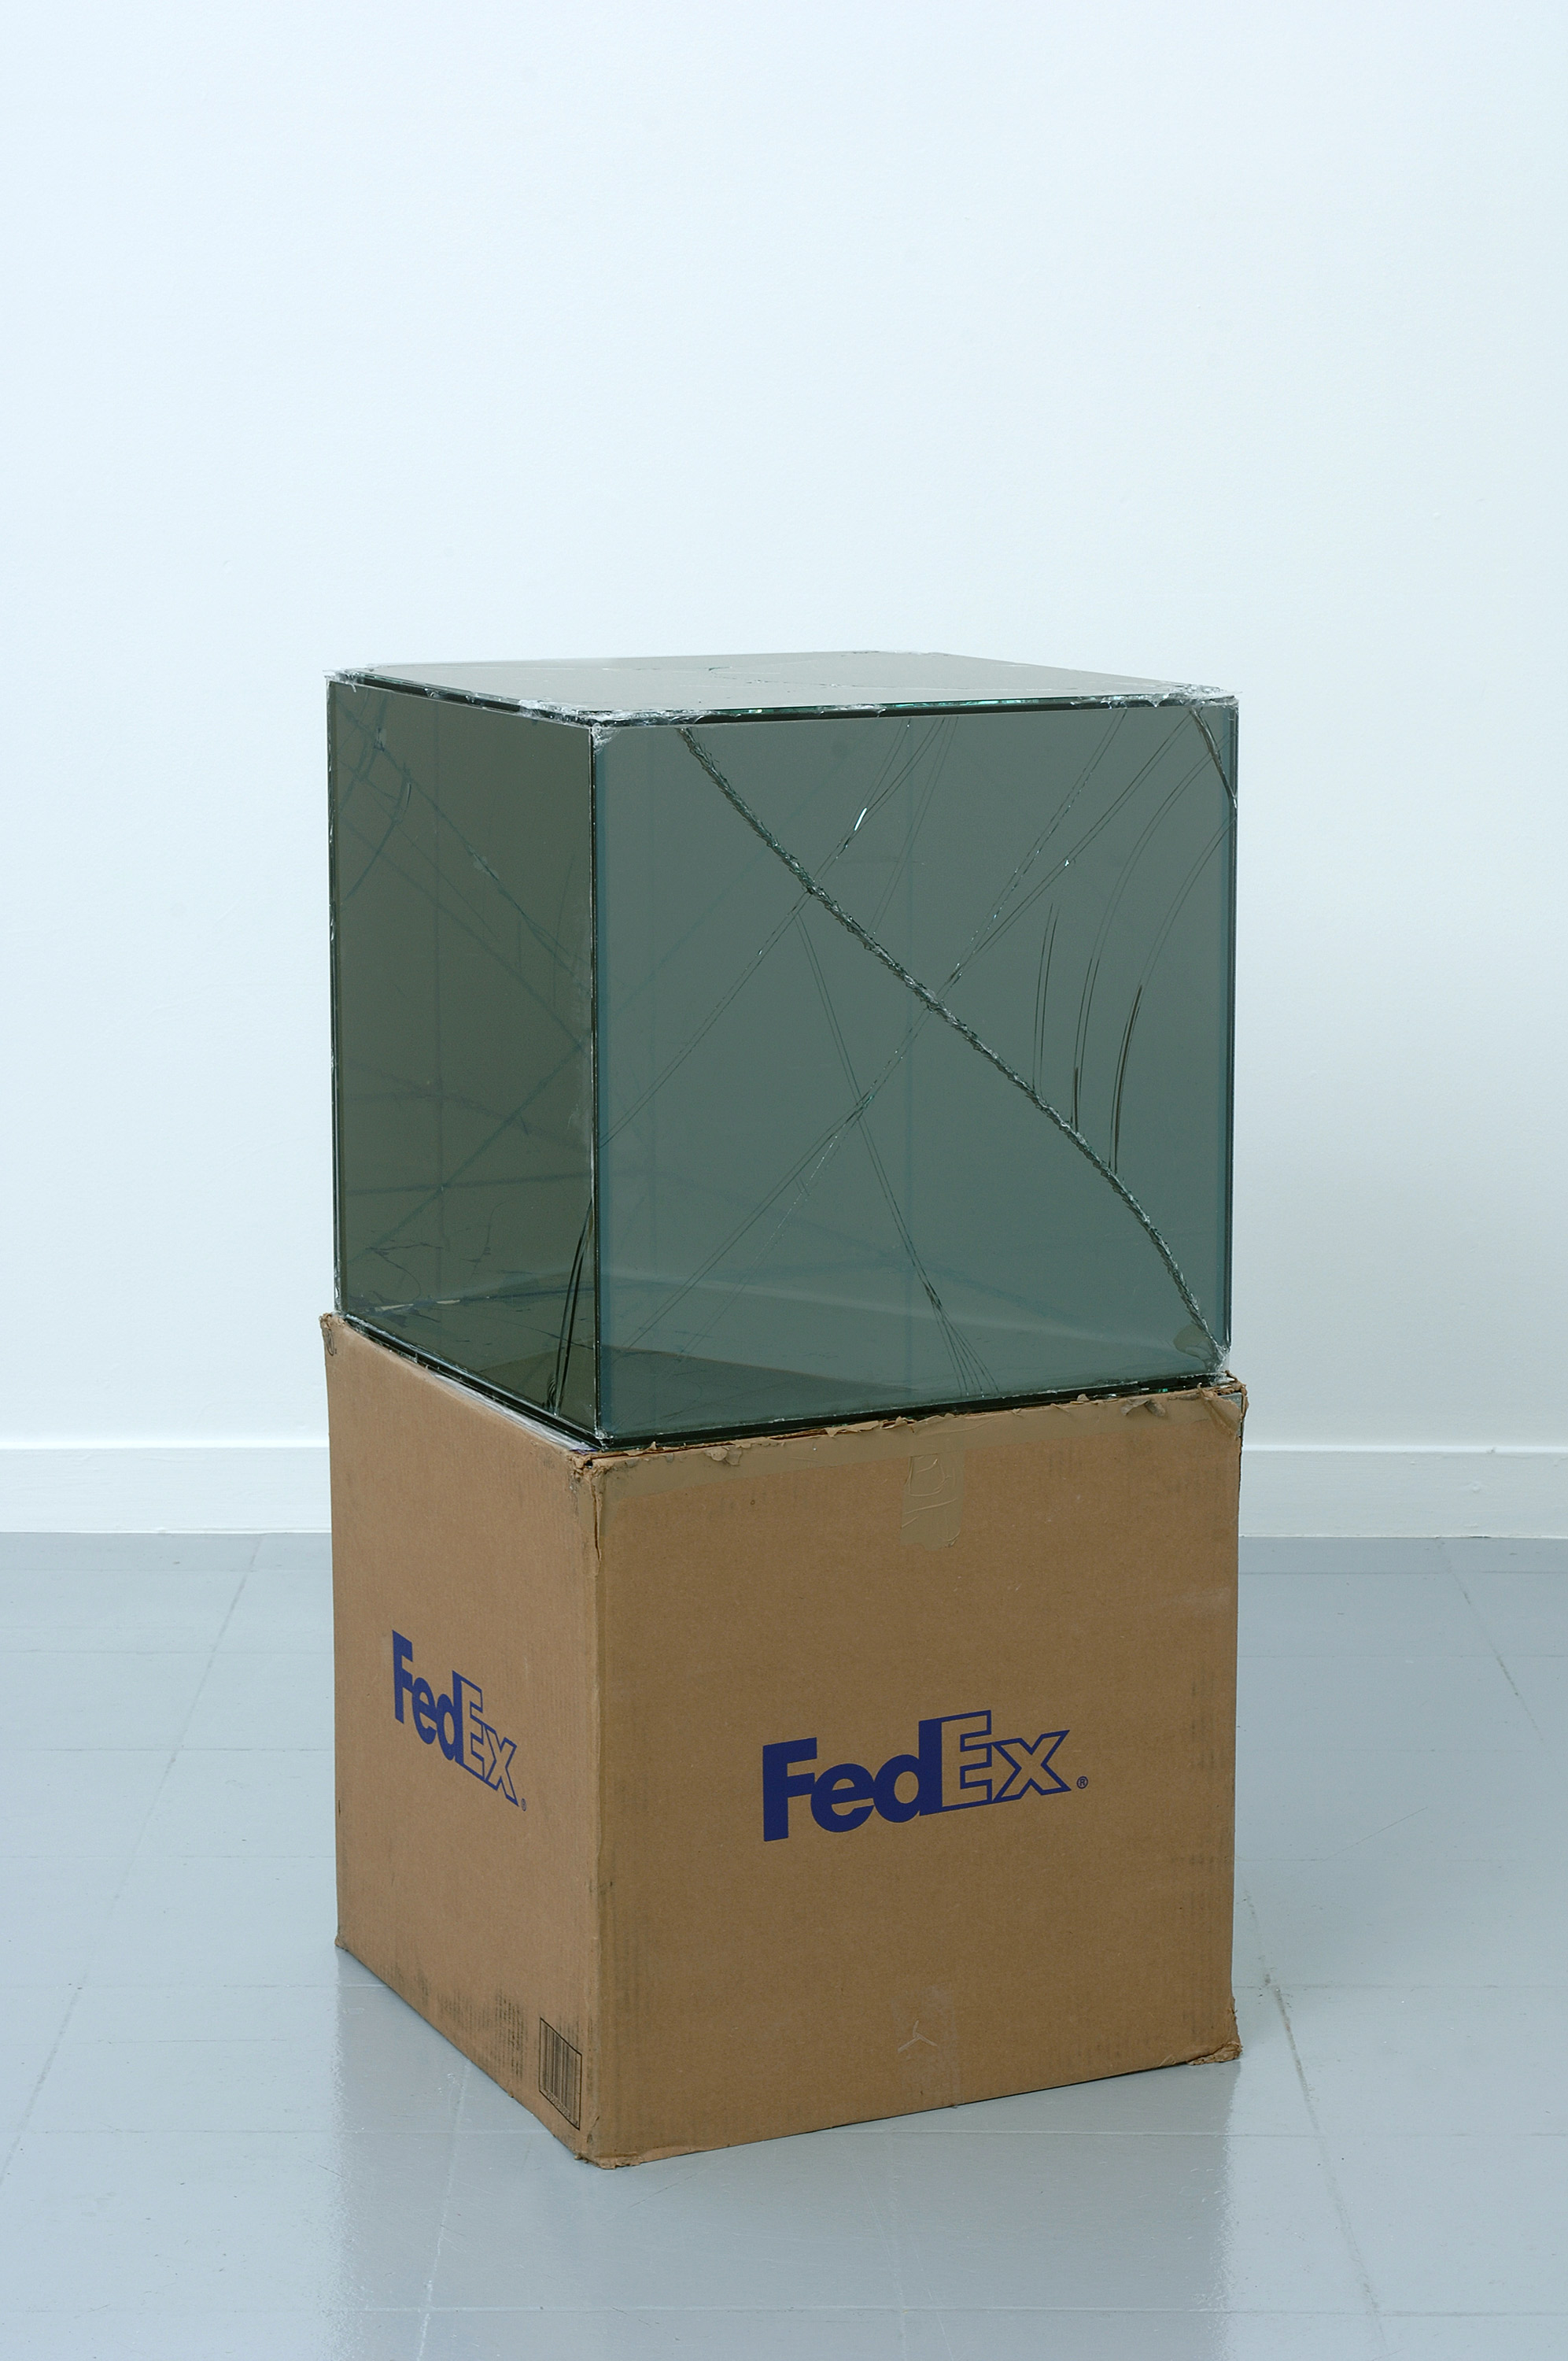 FedEx® Large Kraft Box  © 2005 FEDEX 330508 REV 10/05 SSCC, International Priority, Los Angeles–Brussels trk#865282057942, October 27–30, 2008    2008–   Laminated Mirropane, FedEx shipping box, accrued FedEx shipping and tracking labels, silicone, metal, and tape  20 x 20 x 20 inches   FedEx Glass Works, 2007–